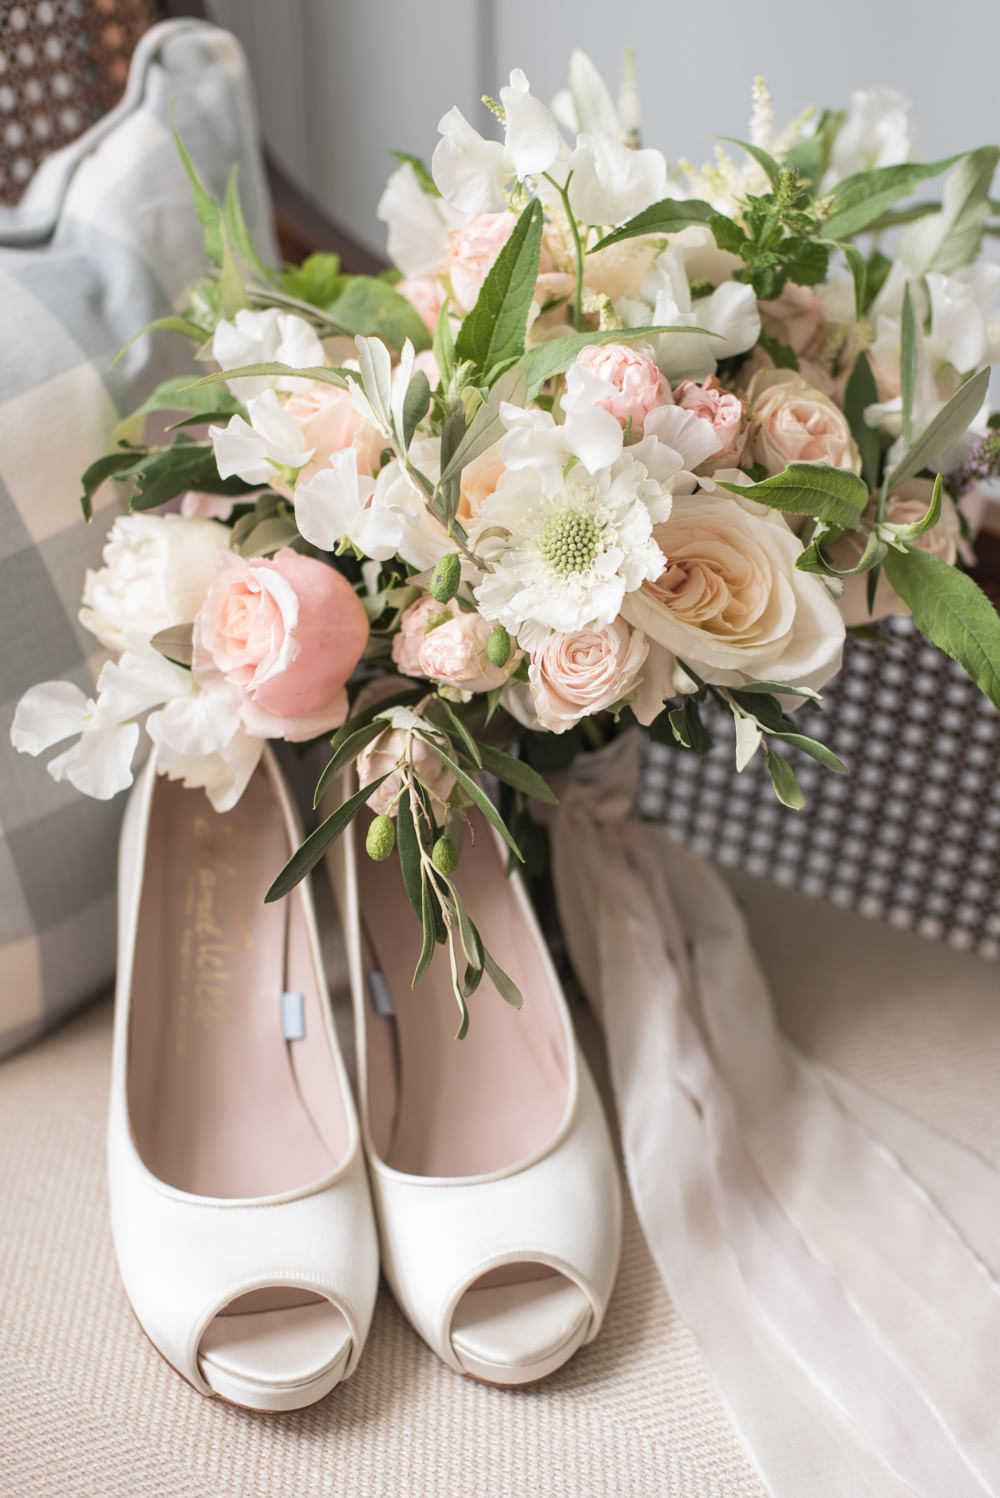 Bouquet Flowers Bride Bridal Blush Pink White Dahlia Cafe Au Lait Rose Sweet Peas Tythe Barn Priston Mill Wedding Eleanor Jane Photography